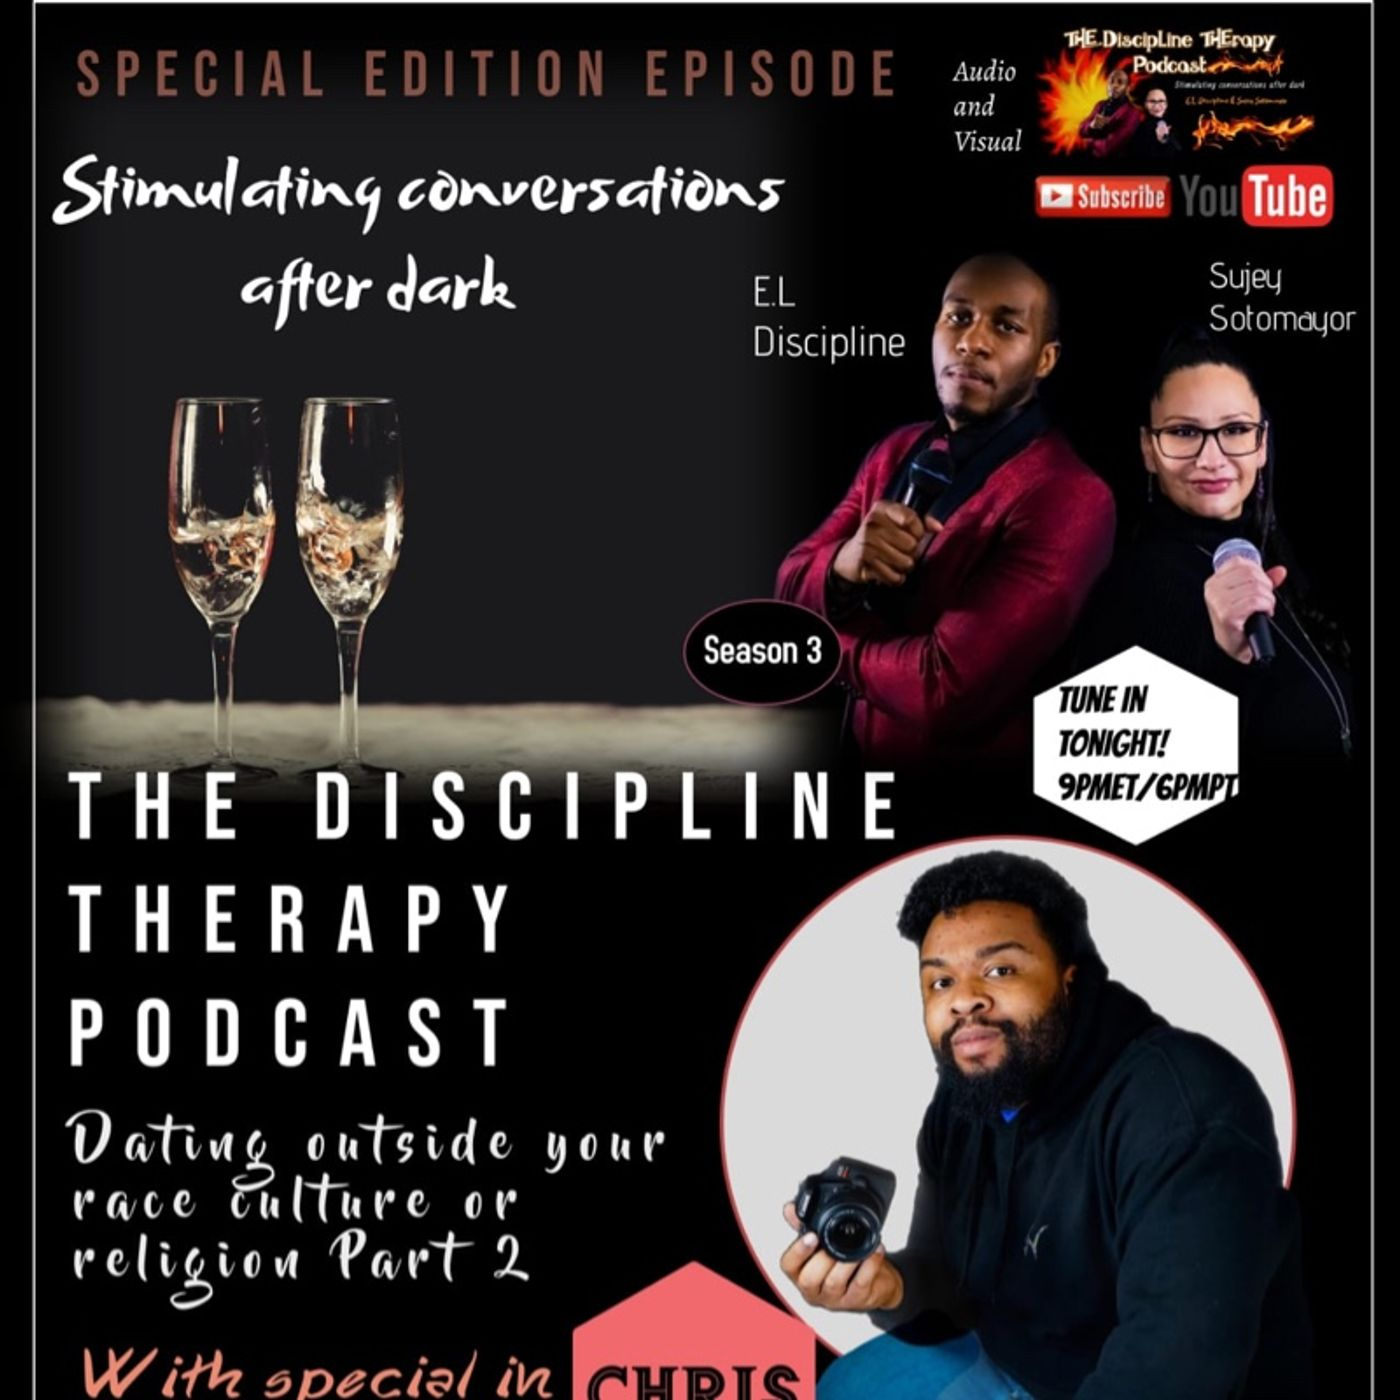 S3: Special Edition Episode- Dating outside of your race, culture and/or religion part 2 w/ special guest...Chris